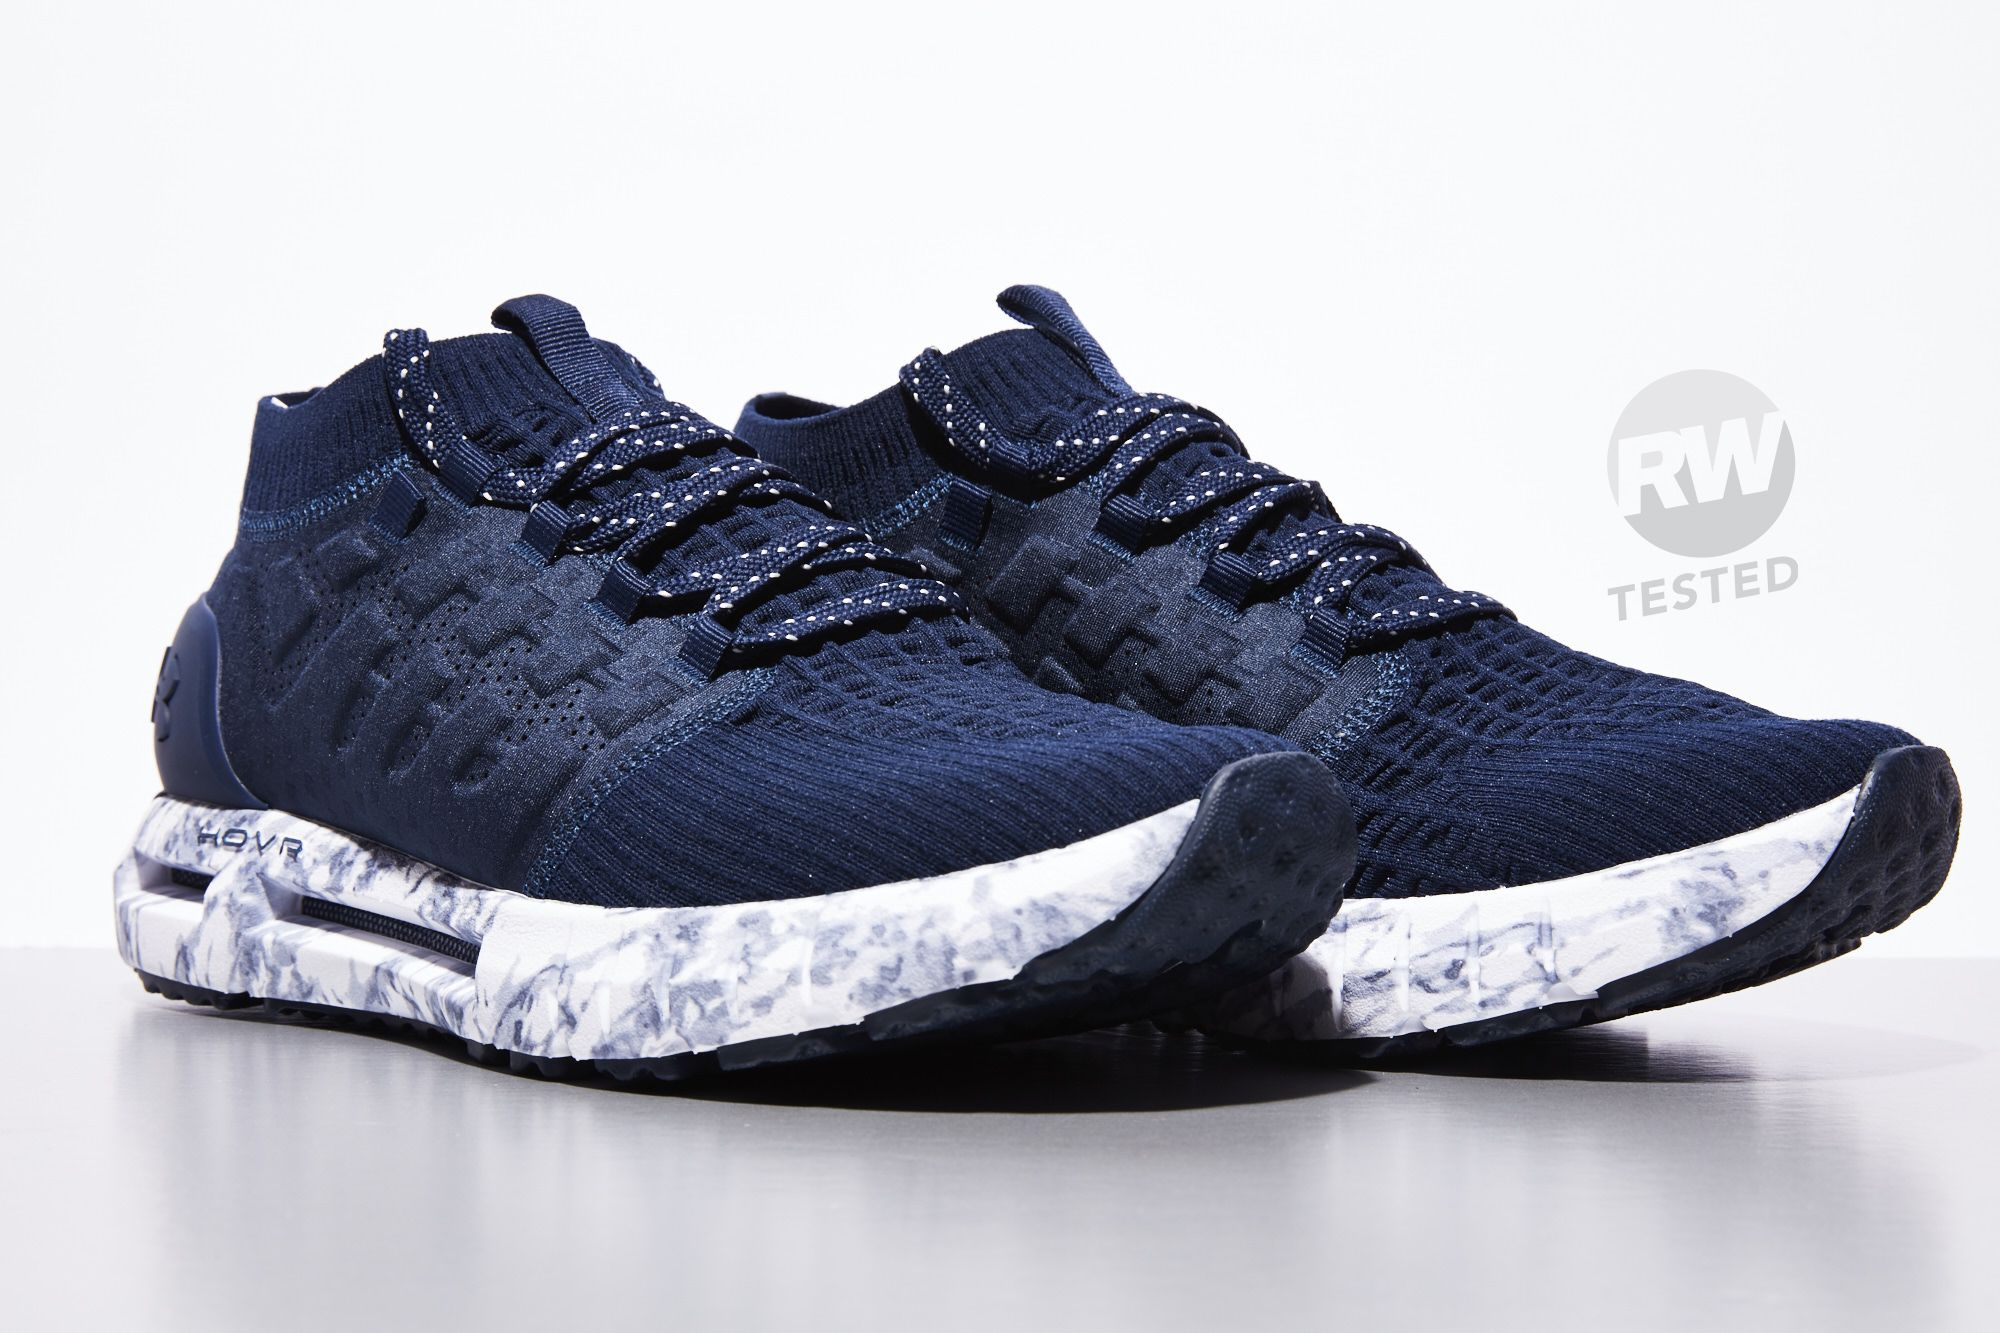 Under Armour HOVR Phantom CT — Running Shoe Review